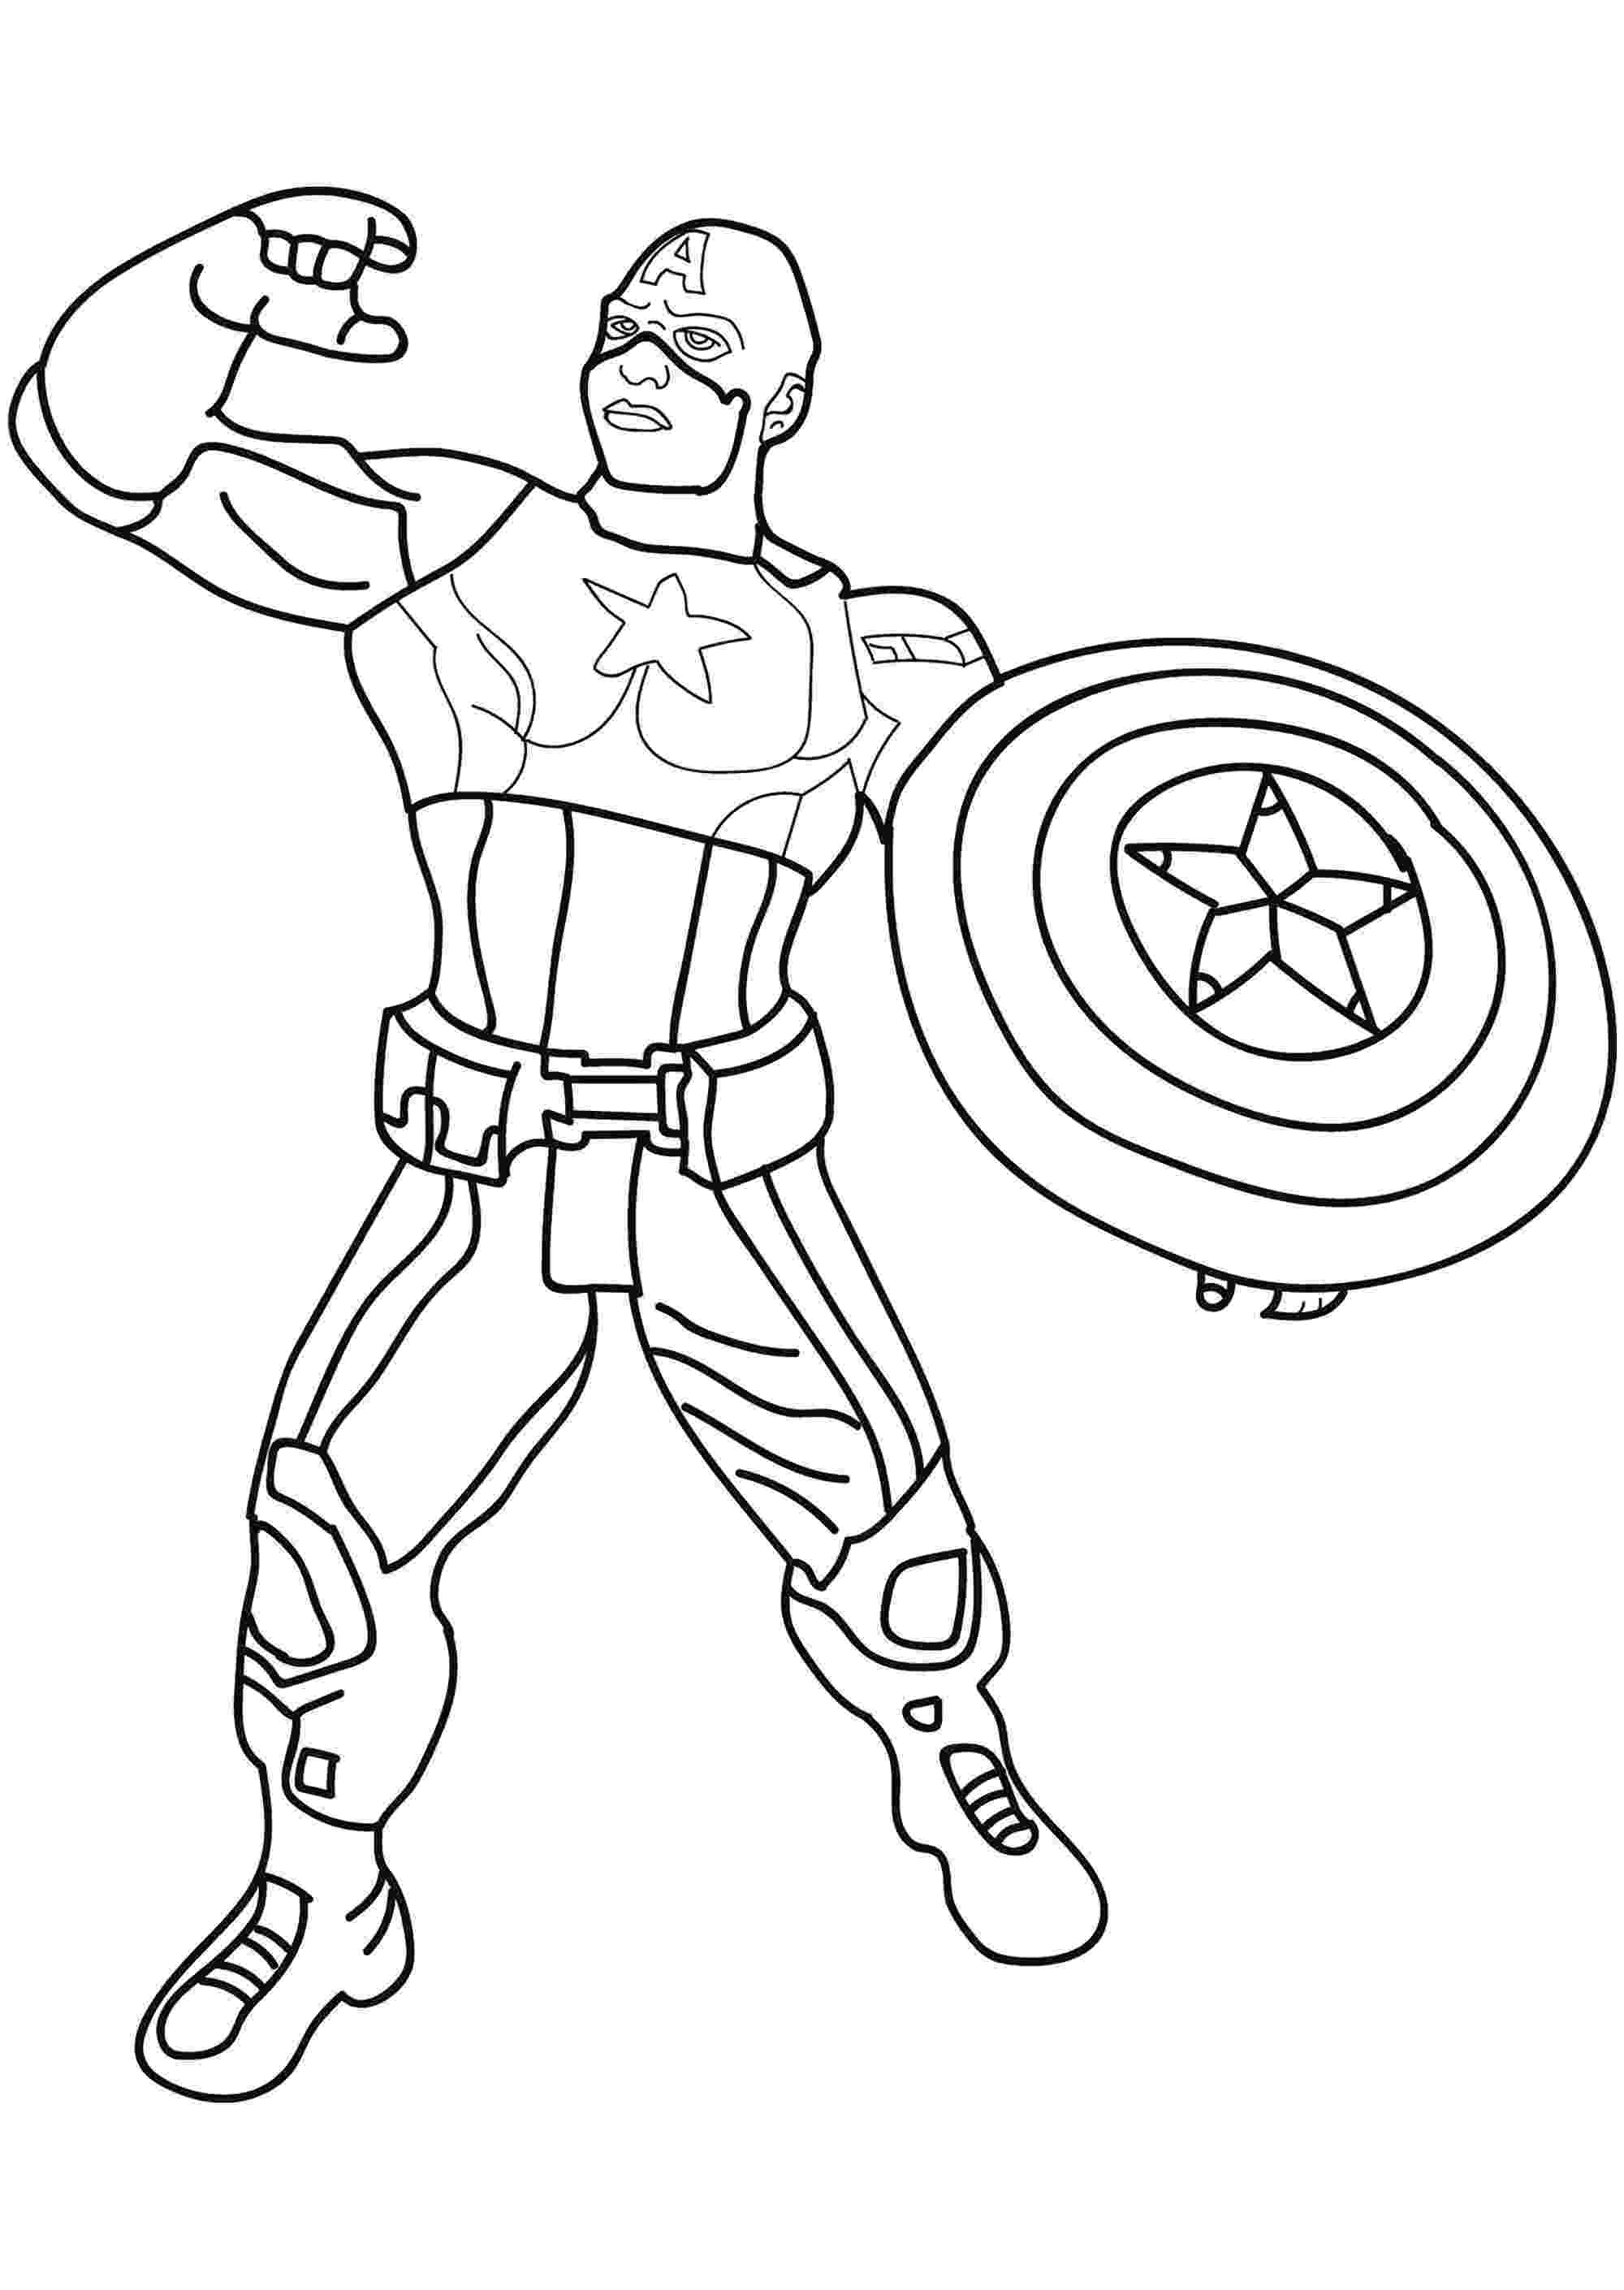 captain america coloring pictures captain america coloring pages to download and print for free coloring pictures america captain